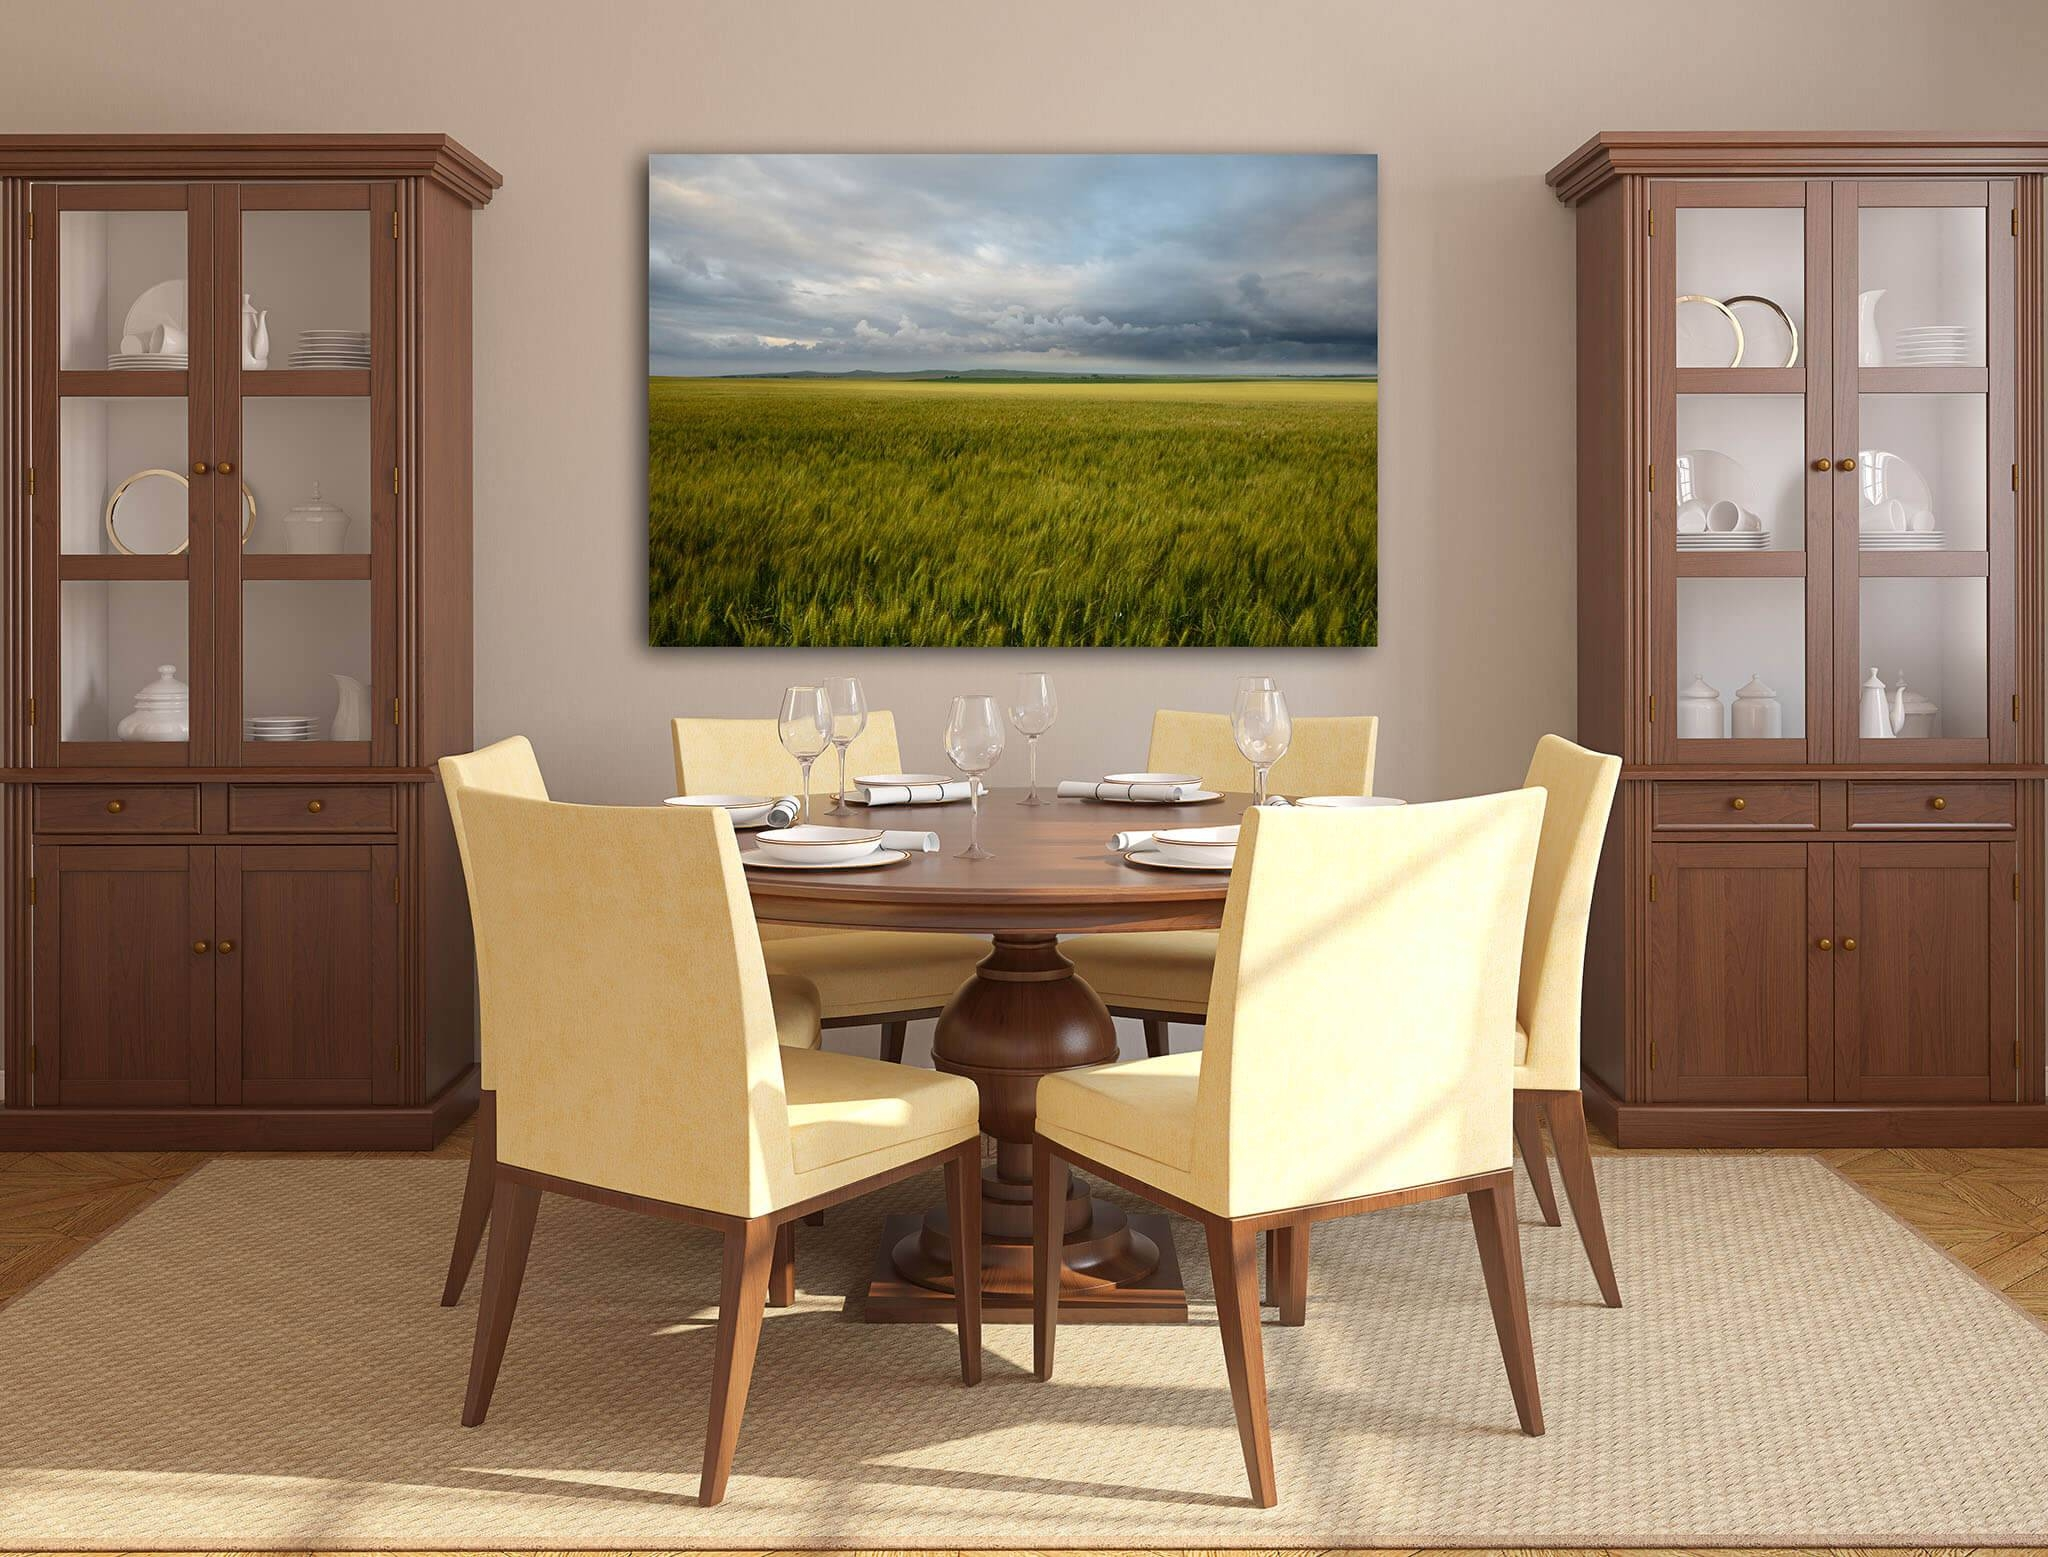 Kitchen & Dining Room Wall Art Ideas - Franklin Arts pertaining to Most Popular Kitchen And Dining Wall Art